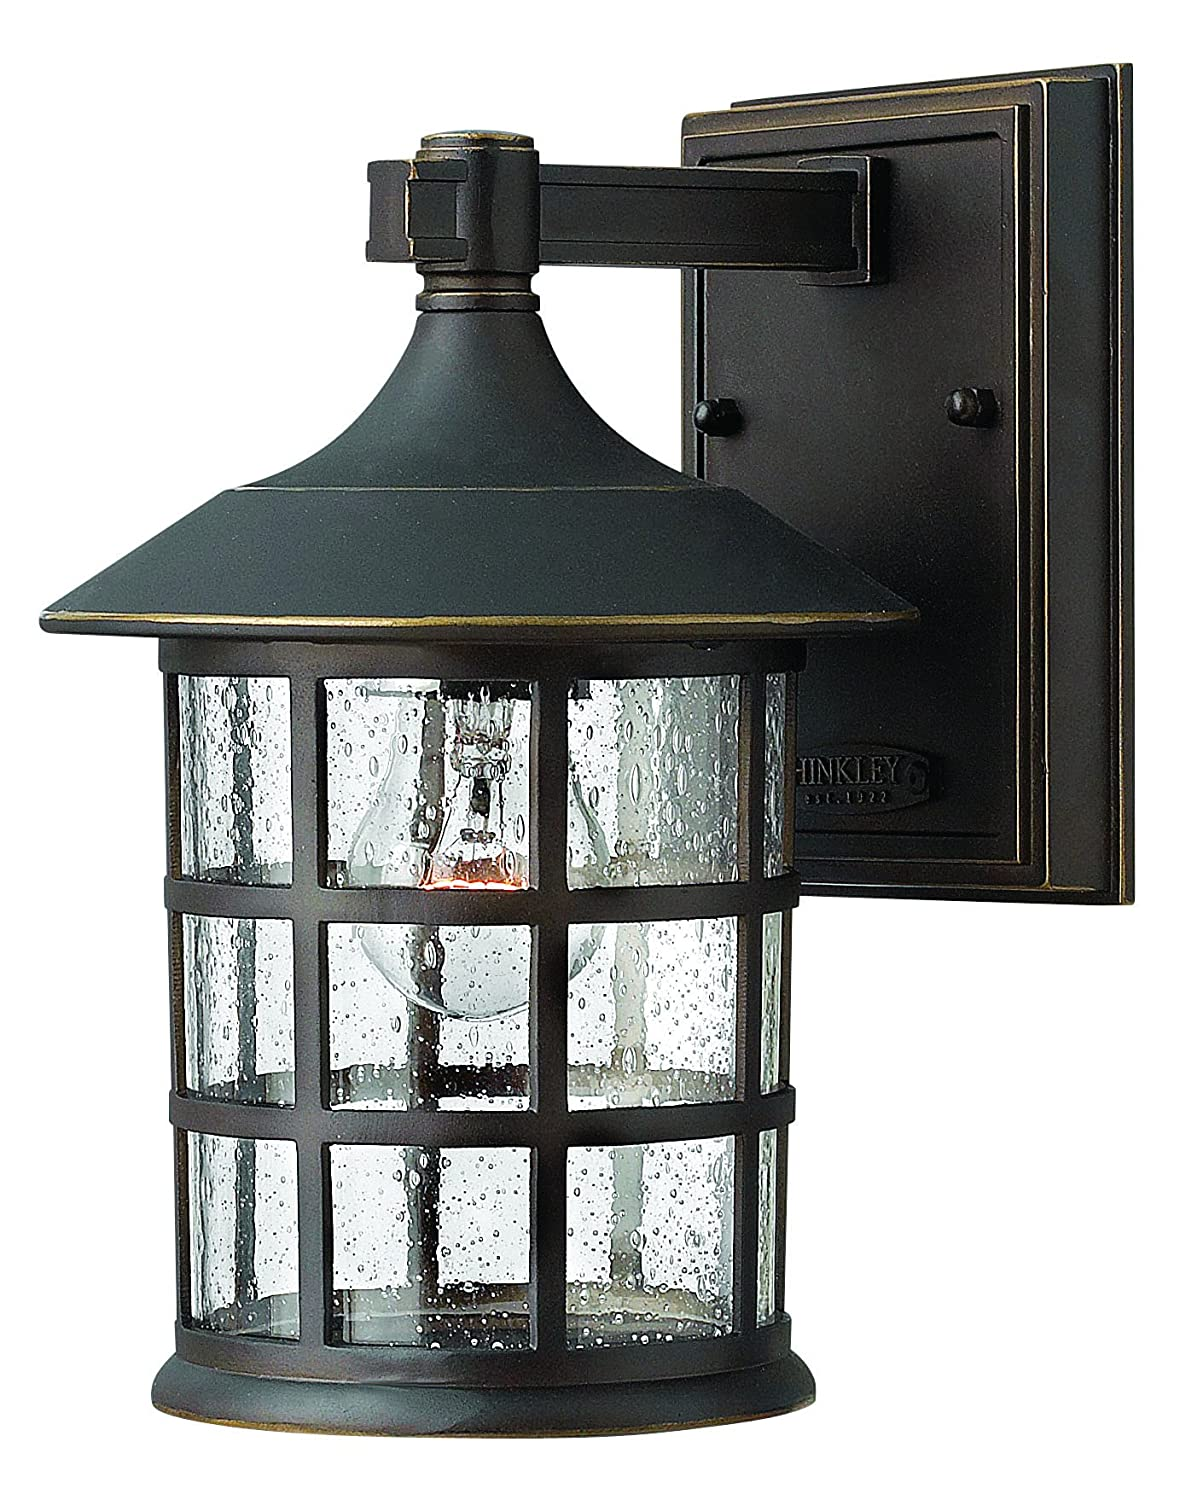 Hinkley 1800oz traditional one light wall mount from freeport hinkley 1800oz traditional one light wall mount from freeport collection in bronzedarkfinish wall porch lights amazon arubaitofo Image collections